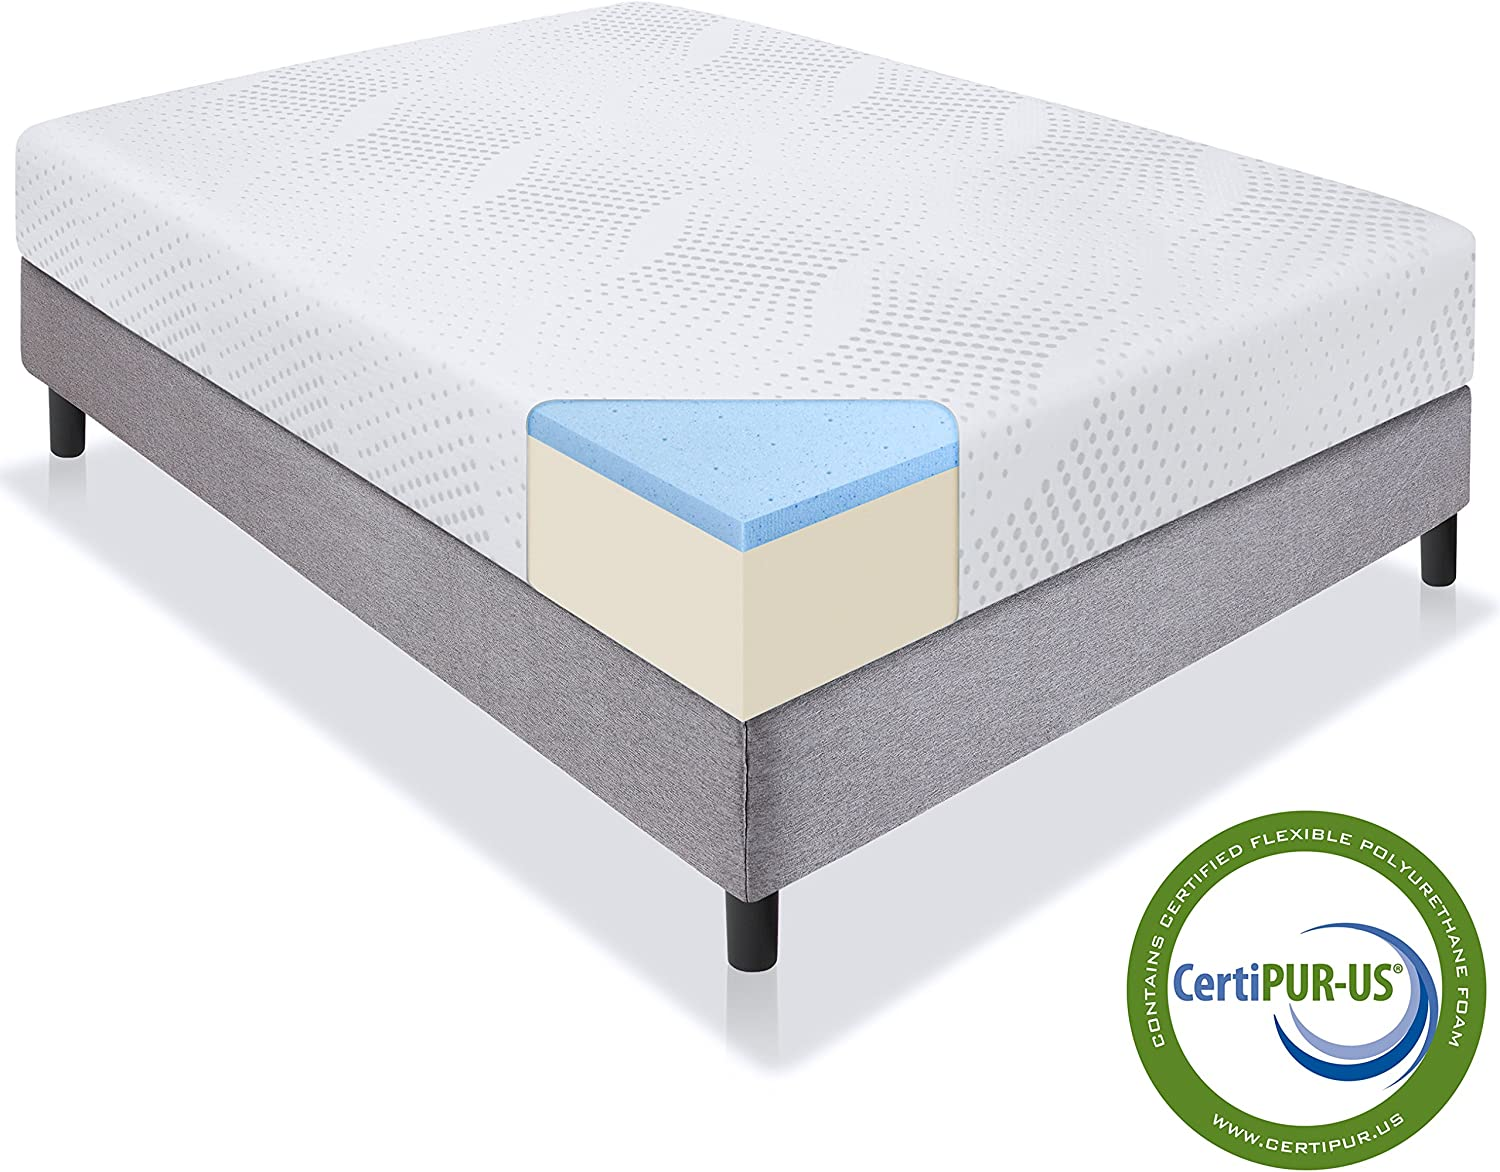 Best Choice Products 10 Dual Layered Gel Memory Foam Mattress Twin CertiPUR-US